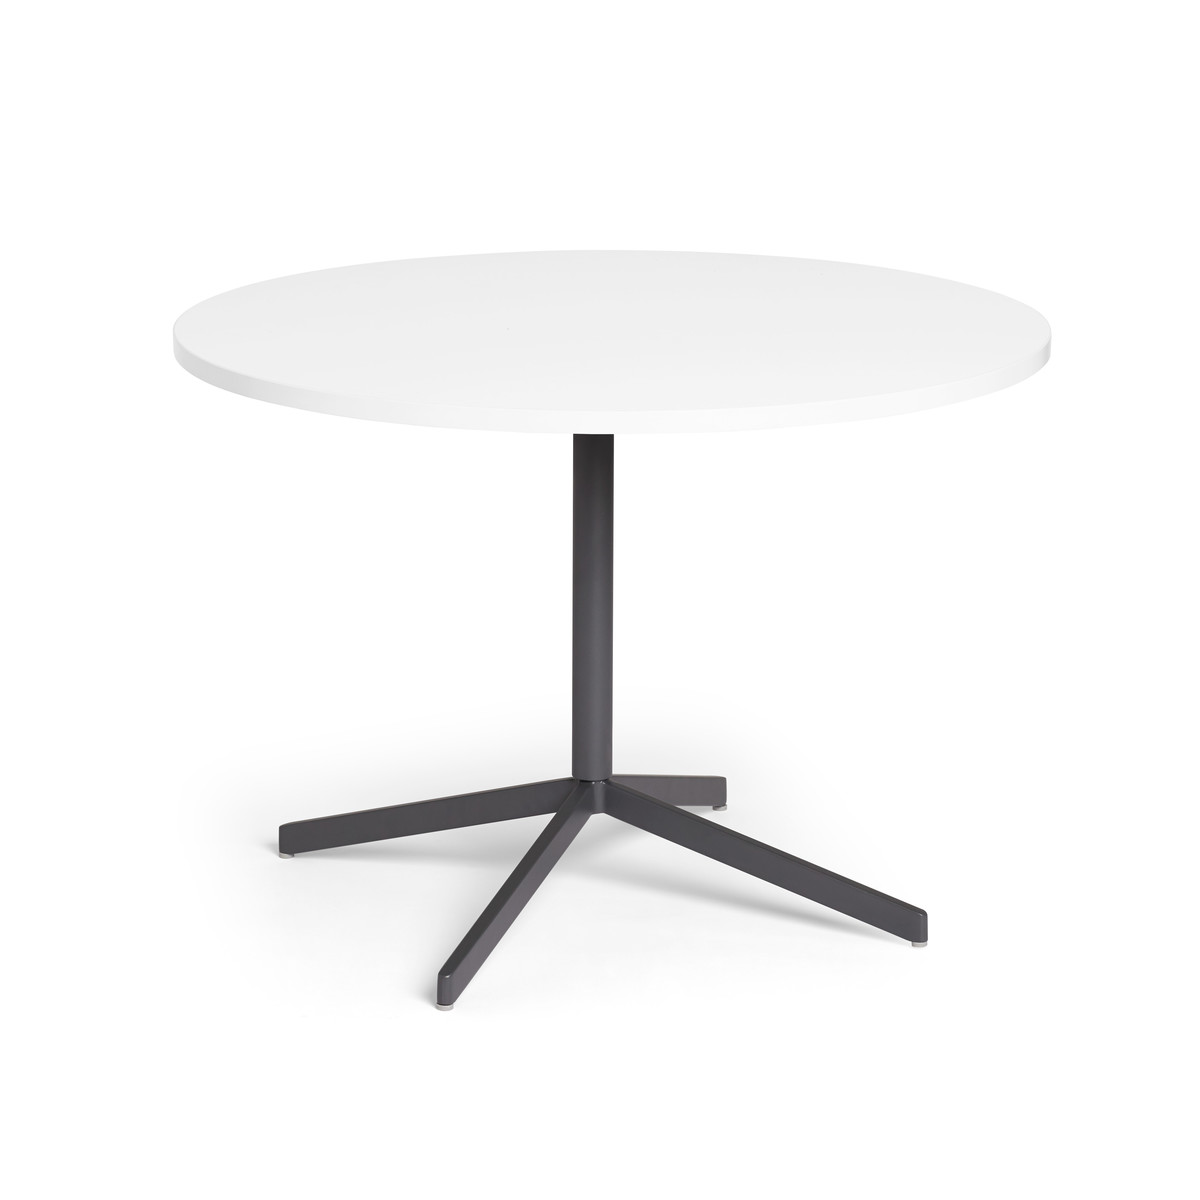 White Touchpoint Table 42 Charcoal Legs Modern Office Furniture Poppin